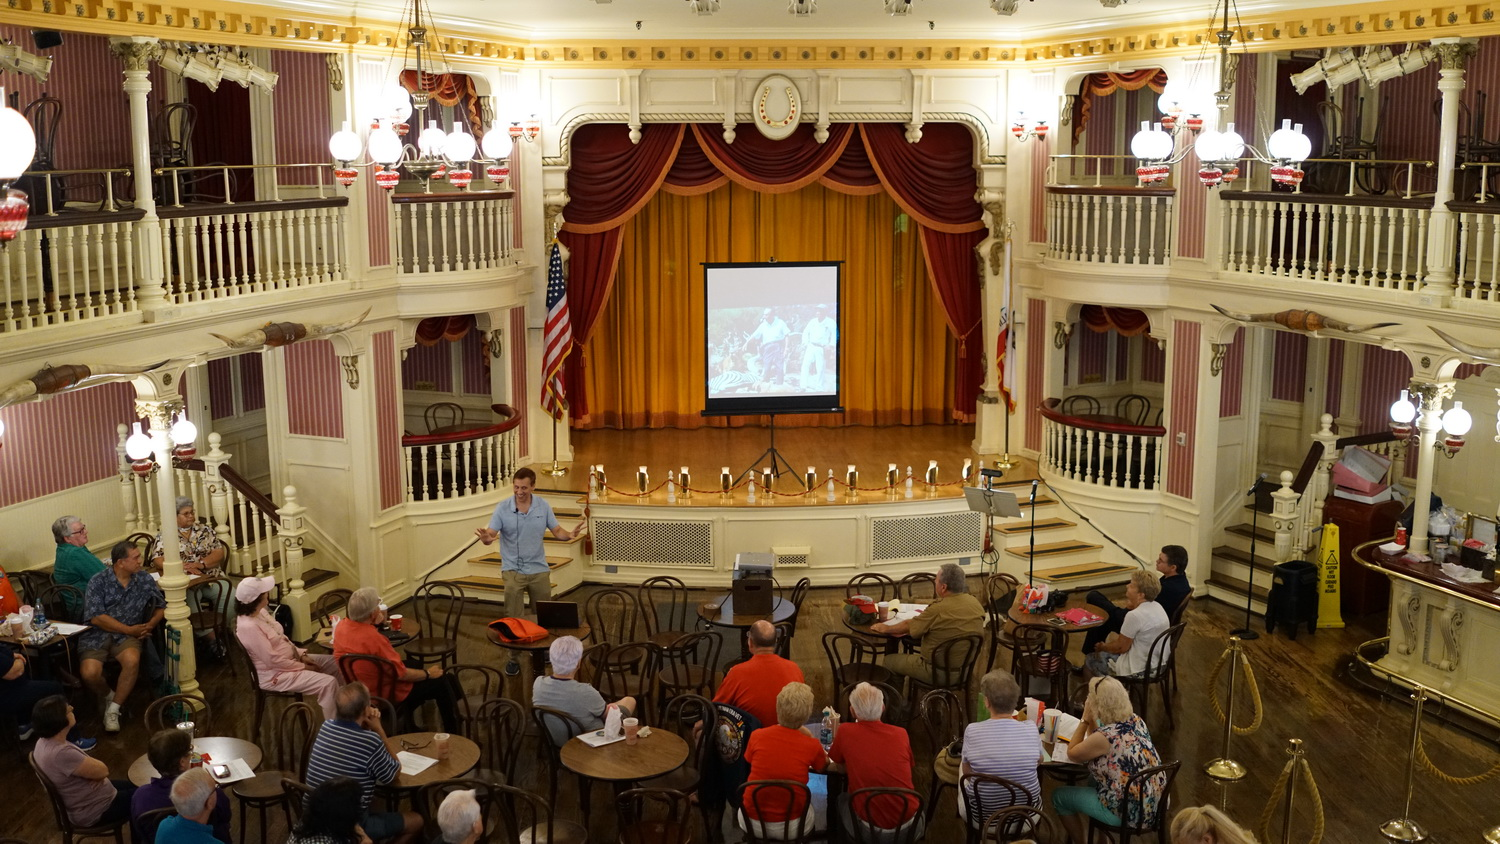 Scott gives a talk in the Golden Horseshoe in Disneyland